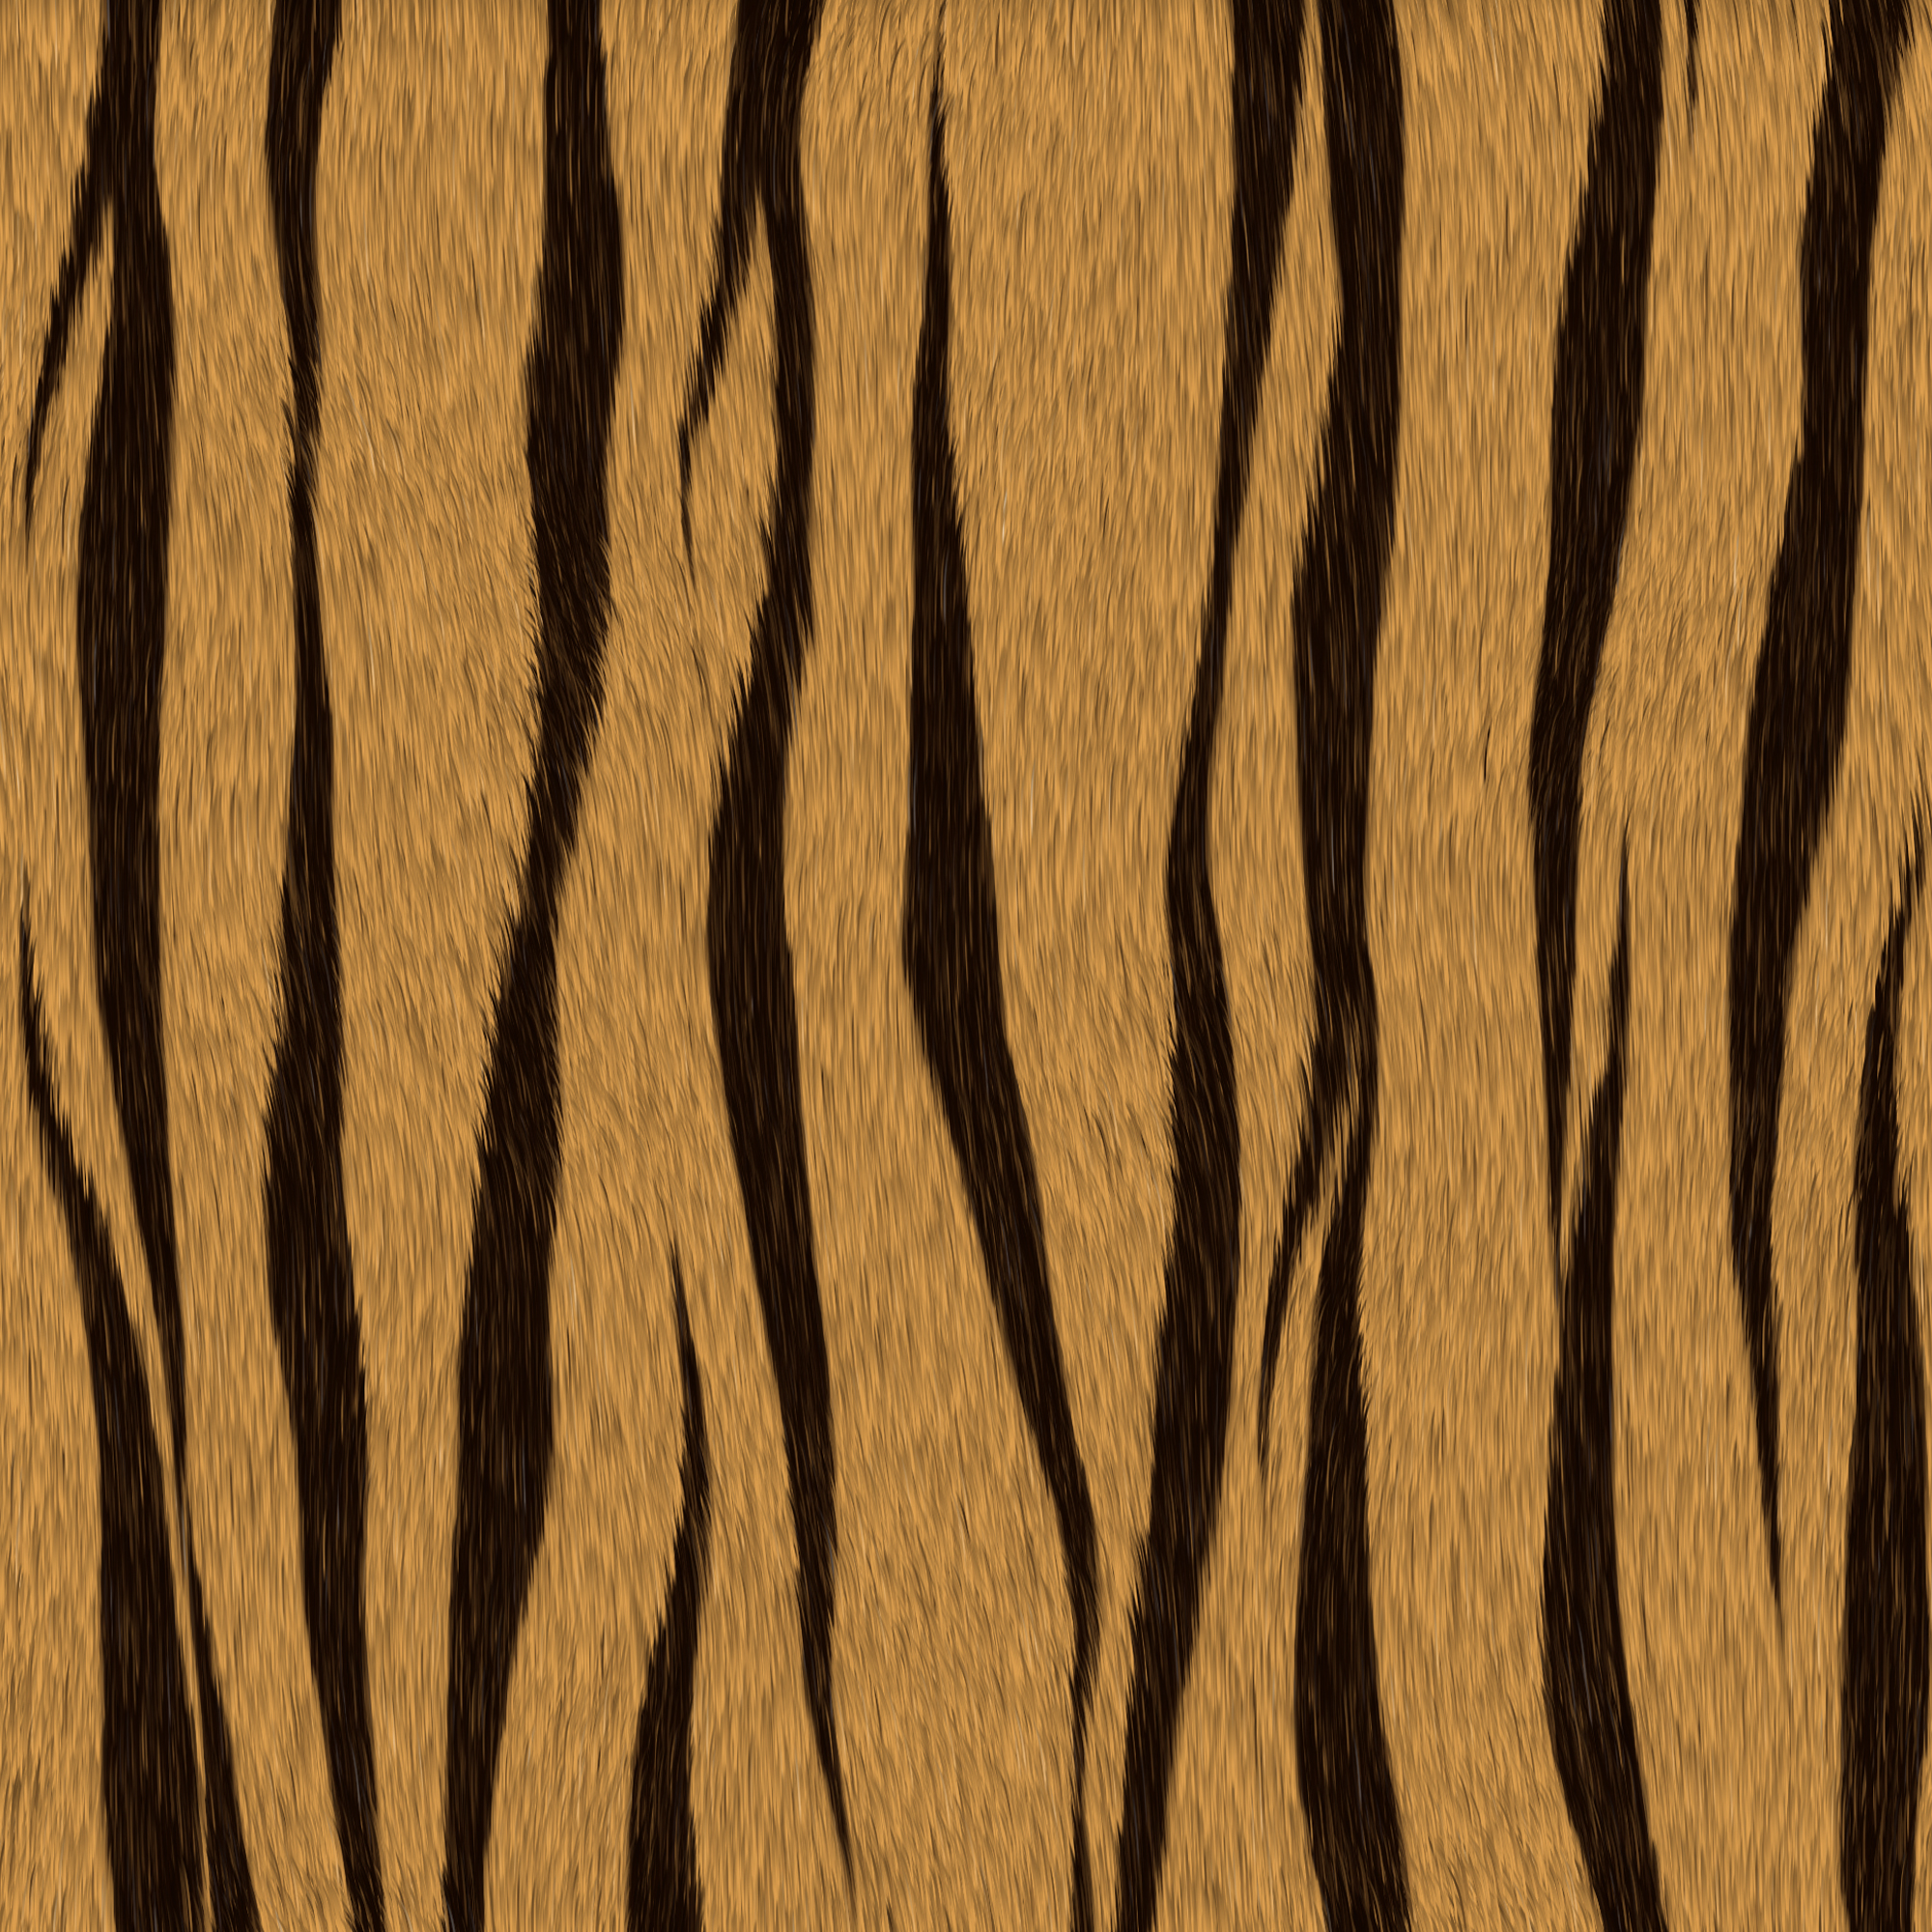 tiger, skin tiger, tiger animal texture, background, skin animal texture, background